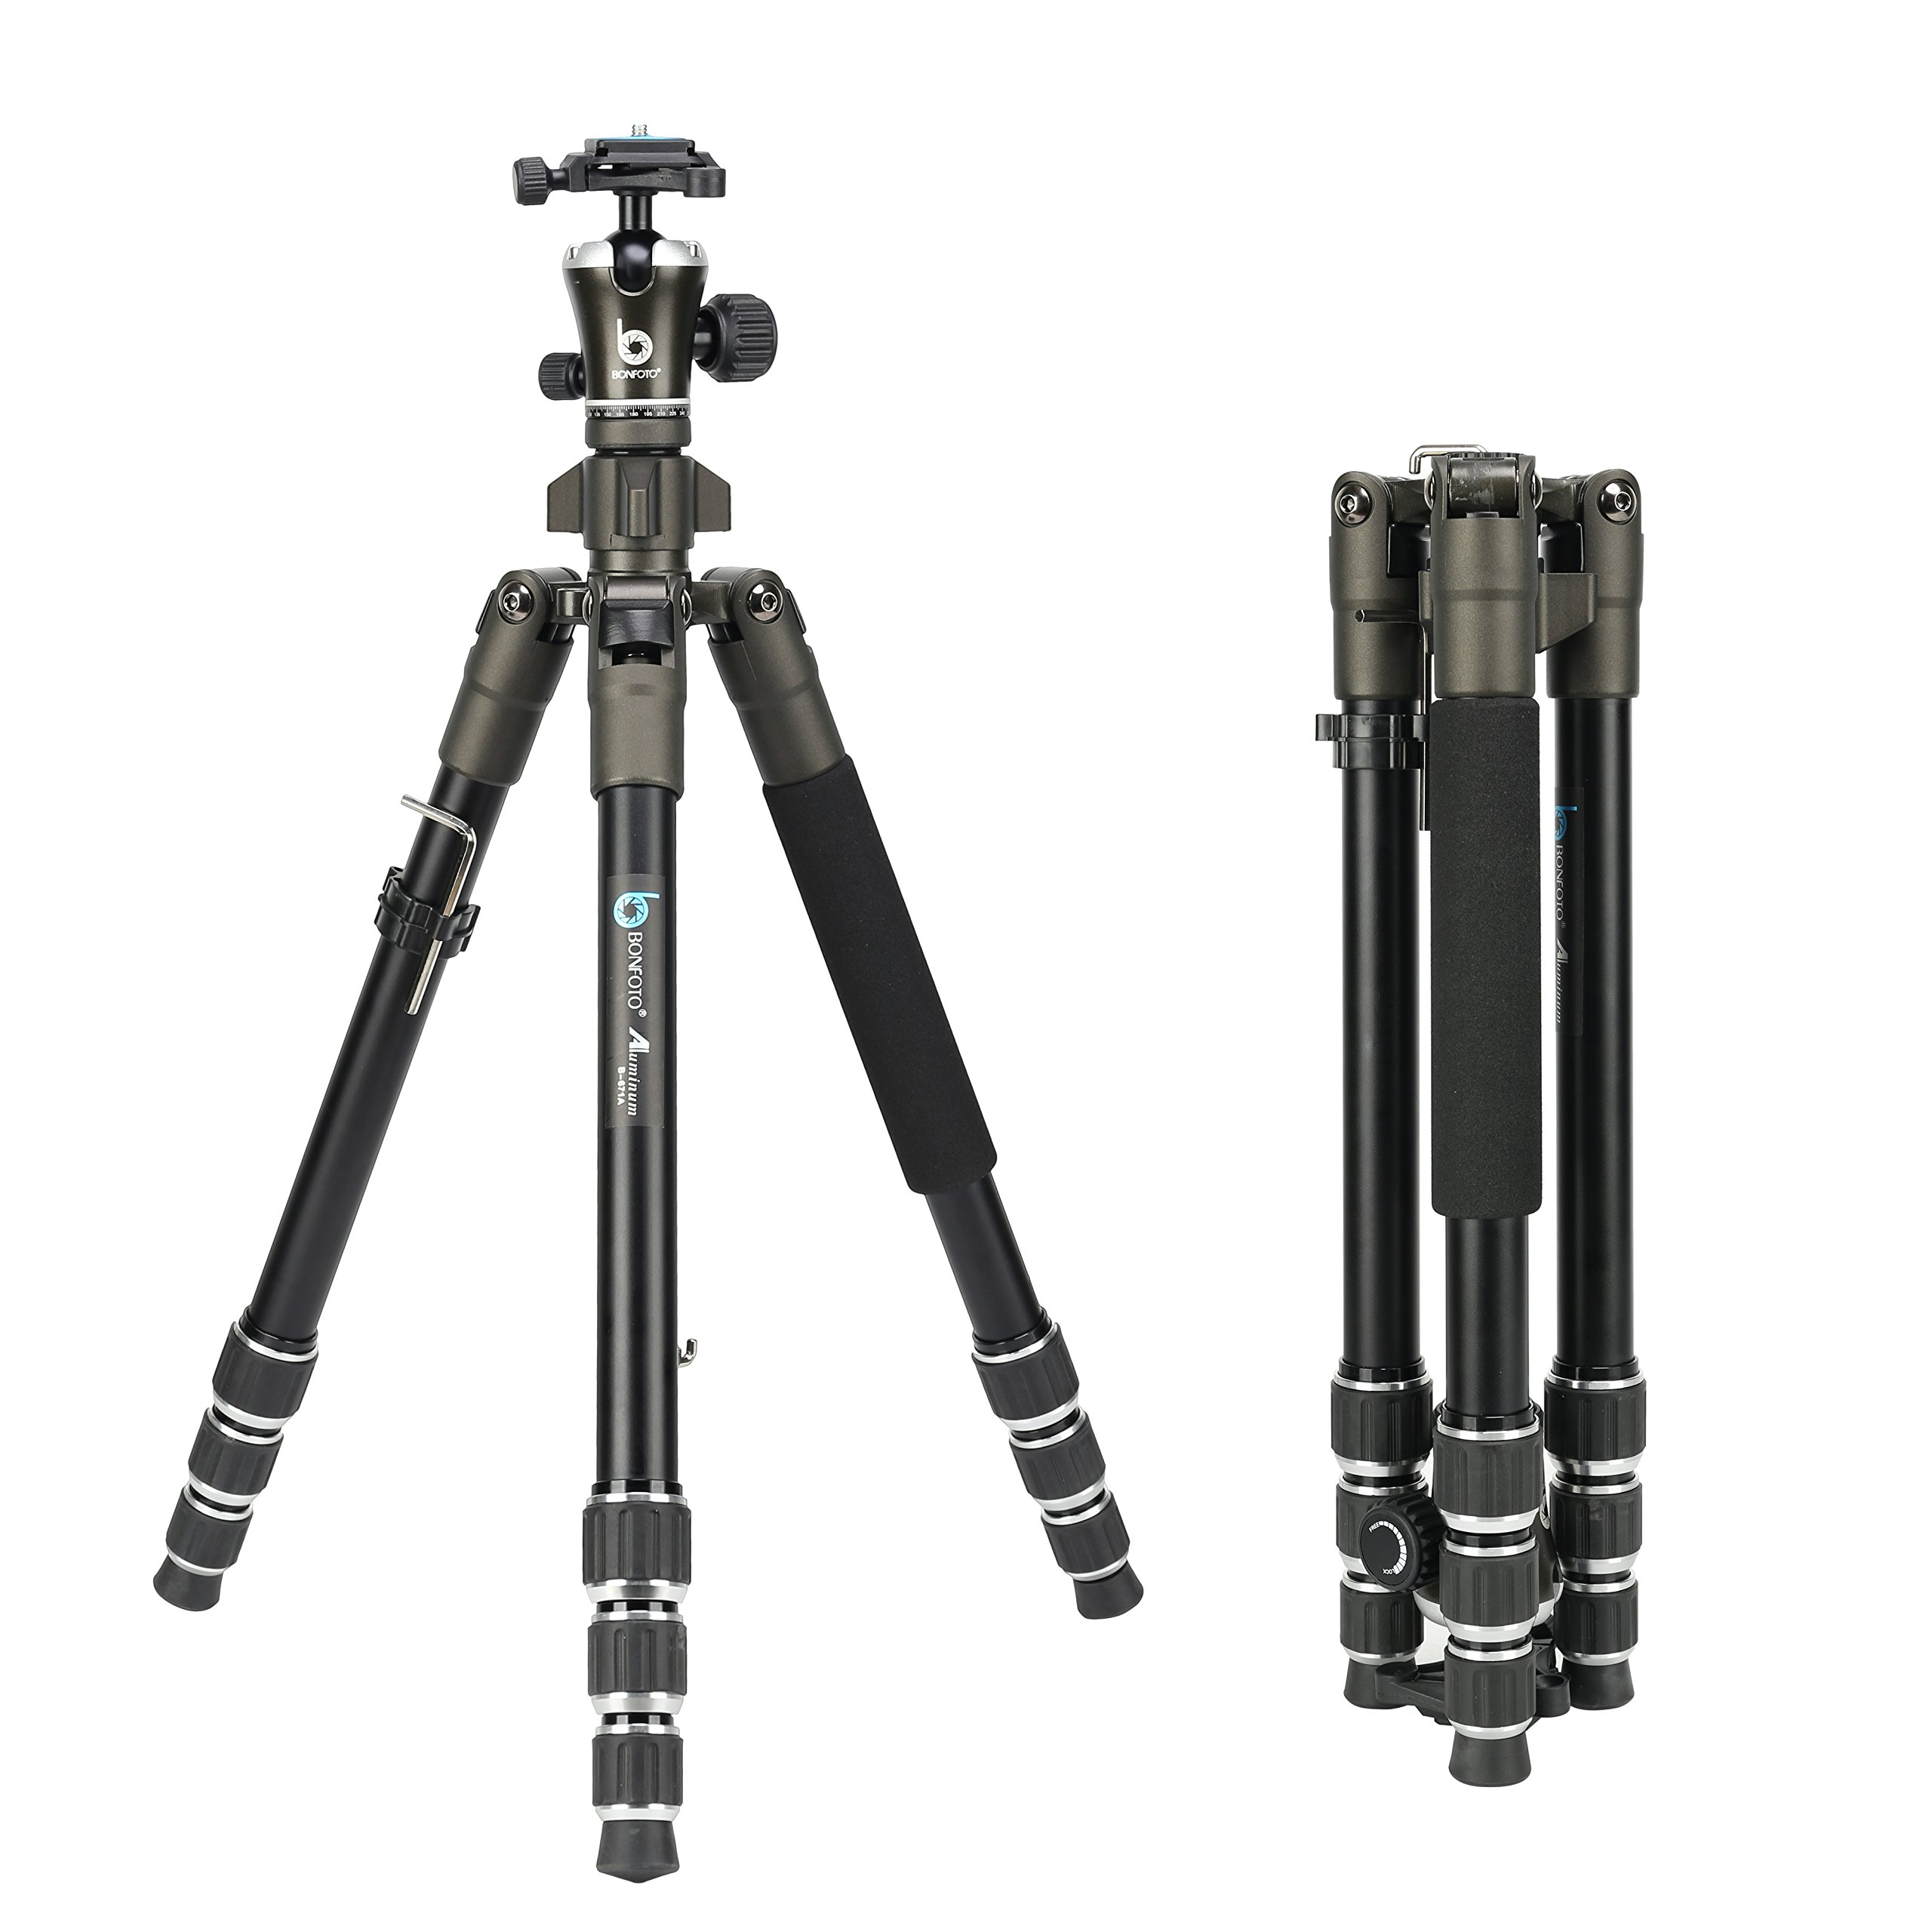 BONFOTO 671A Travel Aluminum Camera Tripod, Lightweight With Two 1/4'' Quick Release Plates Ball Head For Canon/Nikon/Sony/Samsung/Panasonic Olympus DSLR